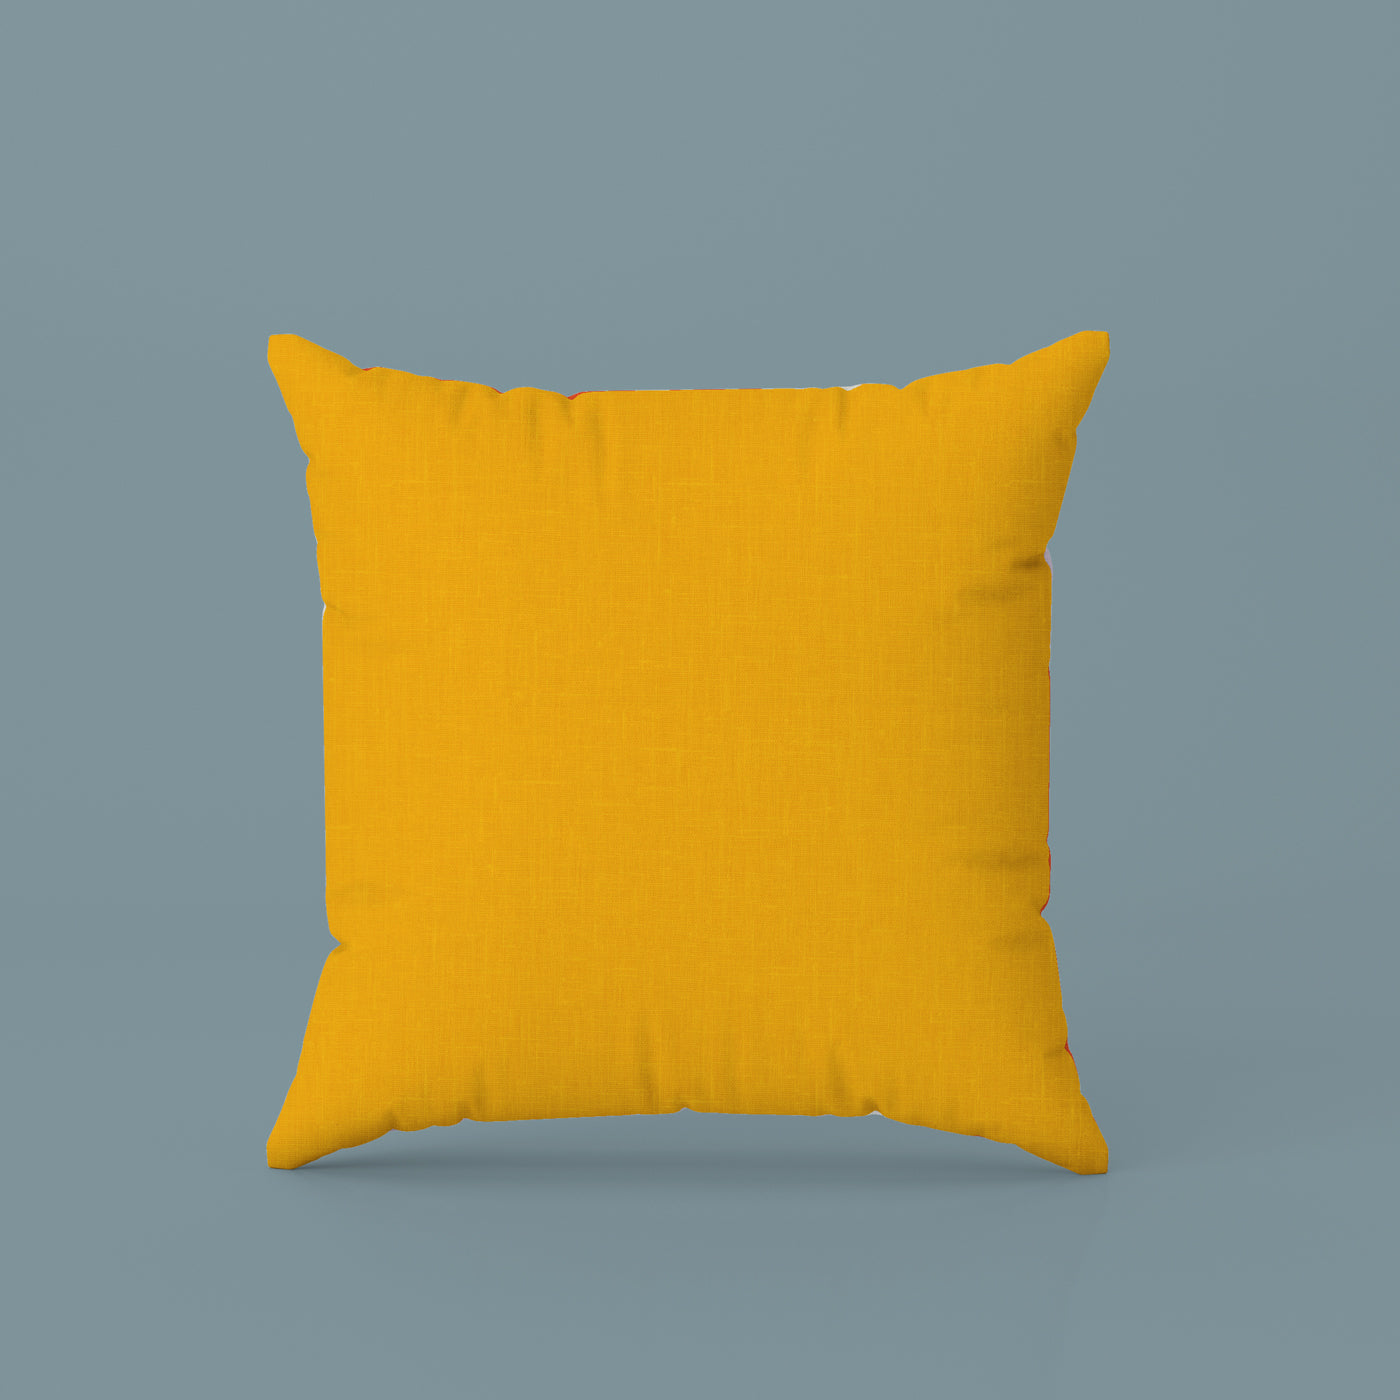 Melbourne Joseph Reed II Cushion